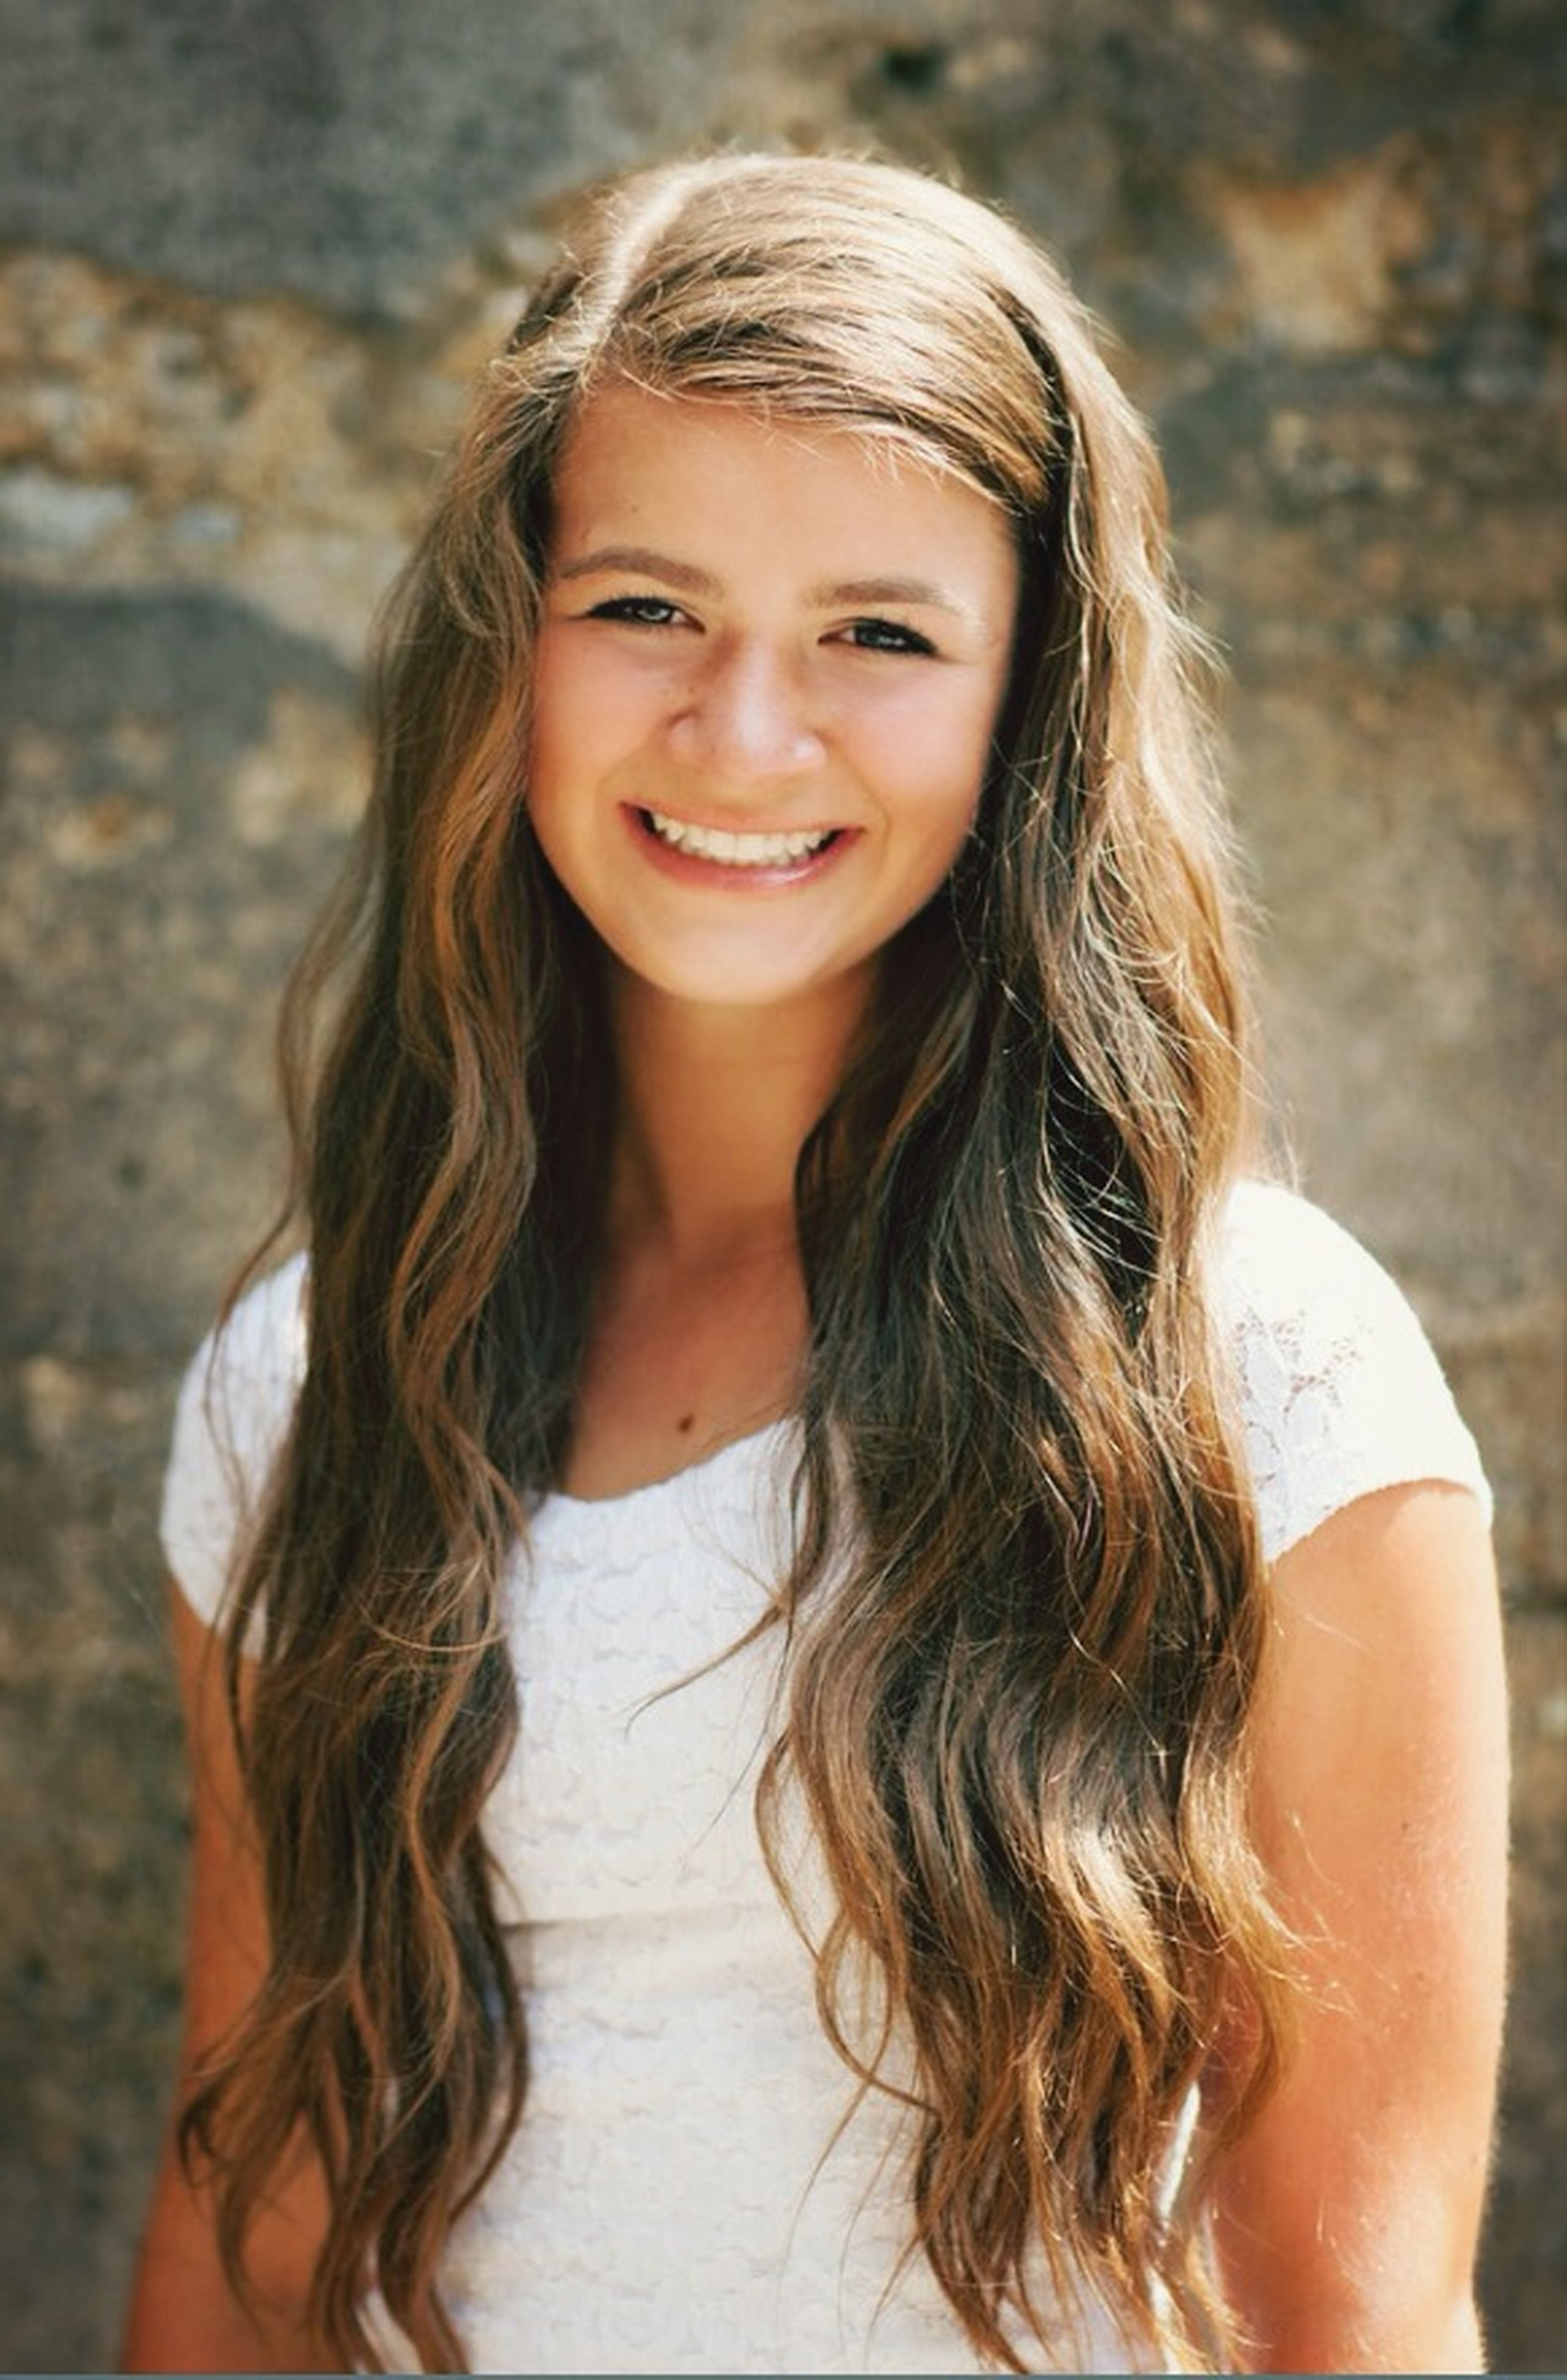 long hair, young women, person, looking at camera, portrait, young adult, lifestyles, smiling, leisure activity, happiness, brown hair, front view, blond hair, casual clothing, headshot, medium-length hair, focus on foreground